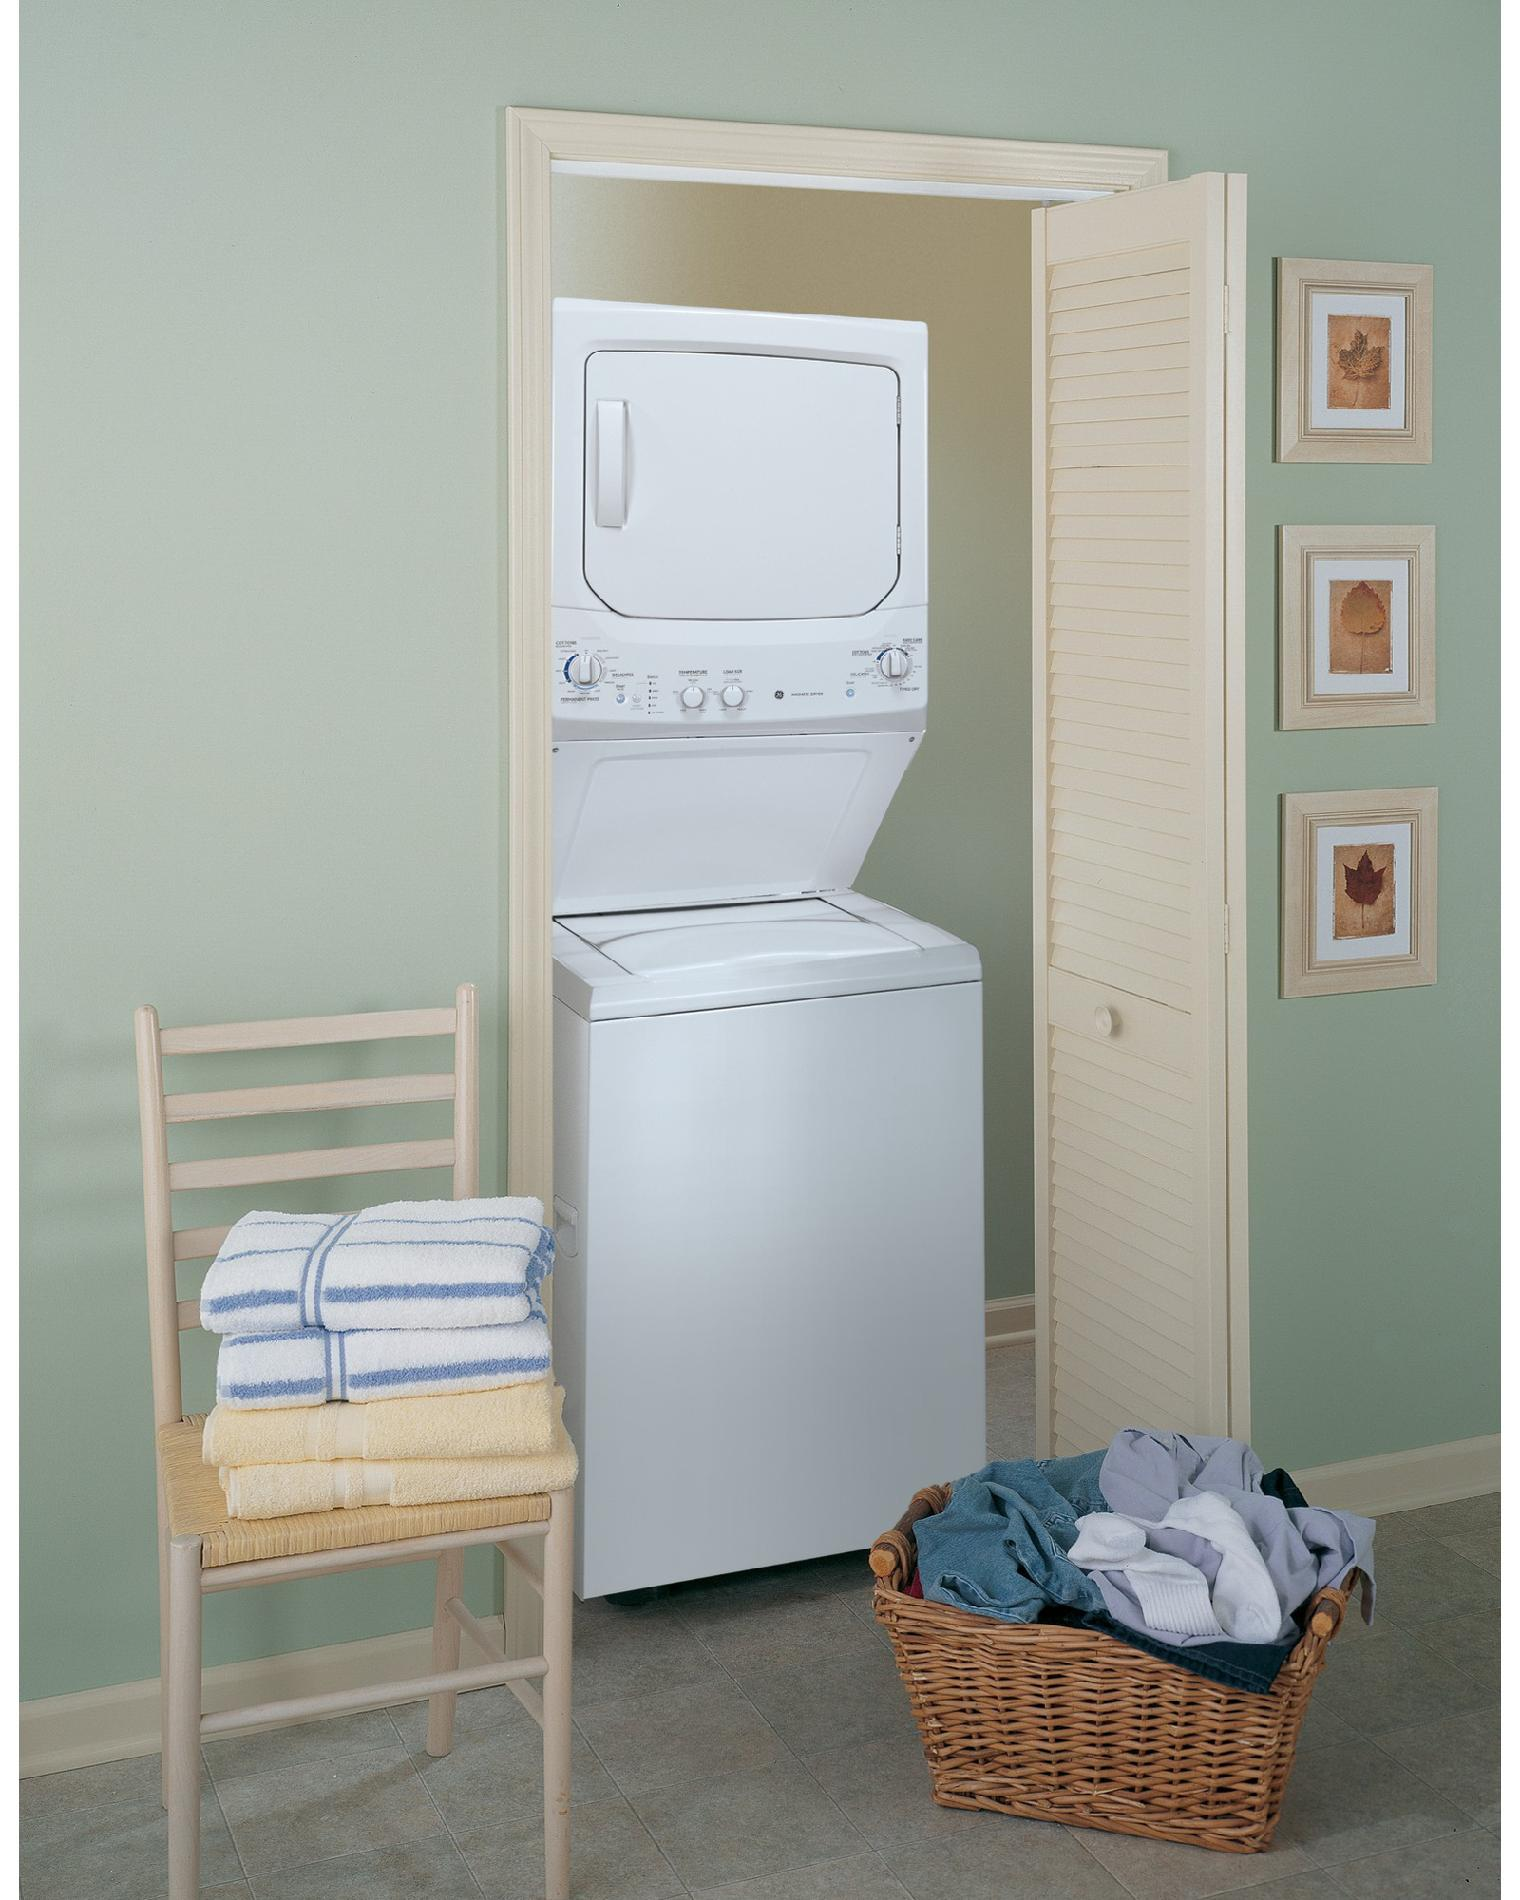 GE Unitized Spacemaker® 3.4 DOE cu. ft. Washer and 5.9 cu. ft. Electric Dryer - White